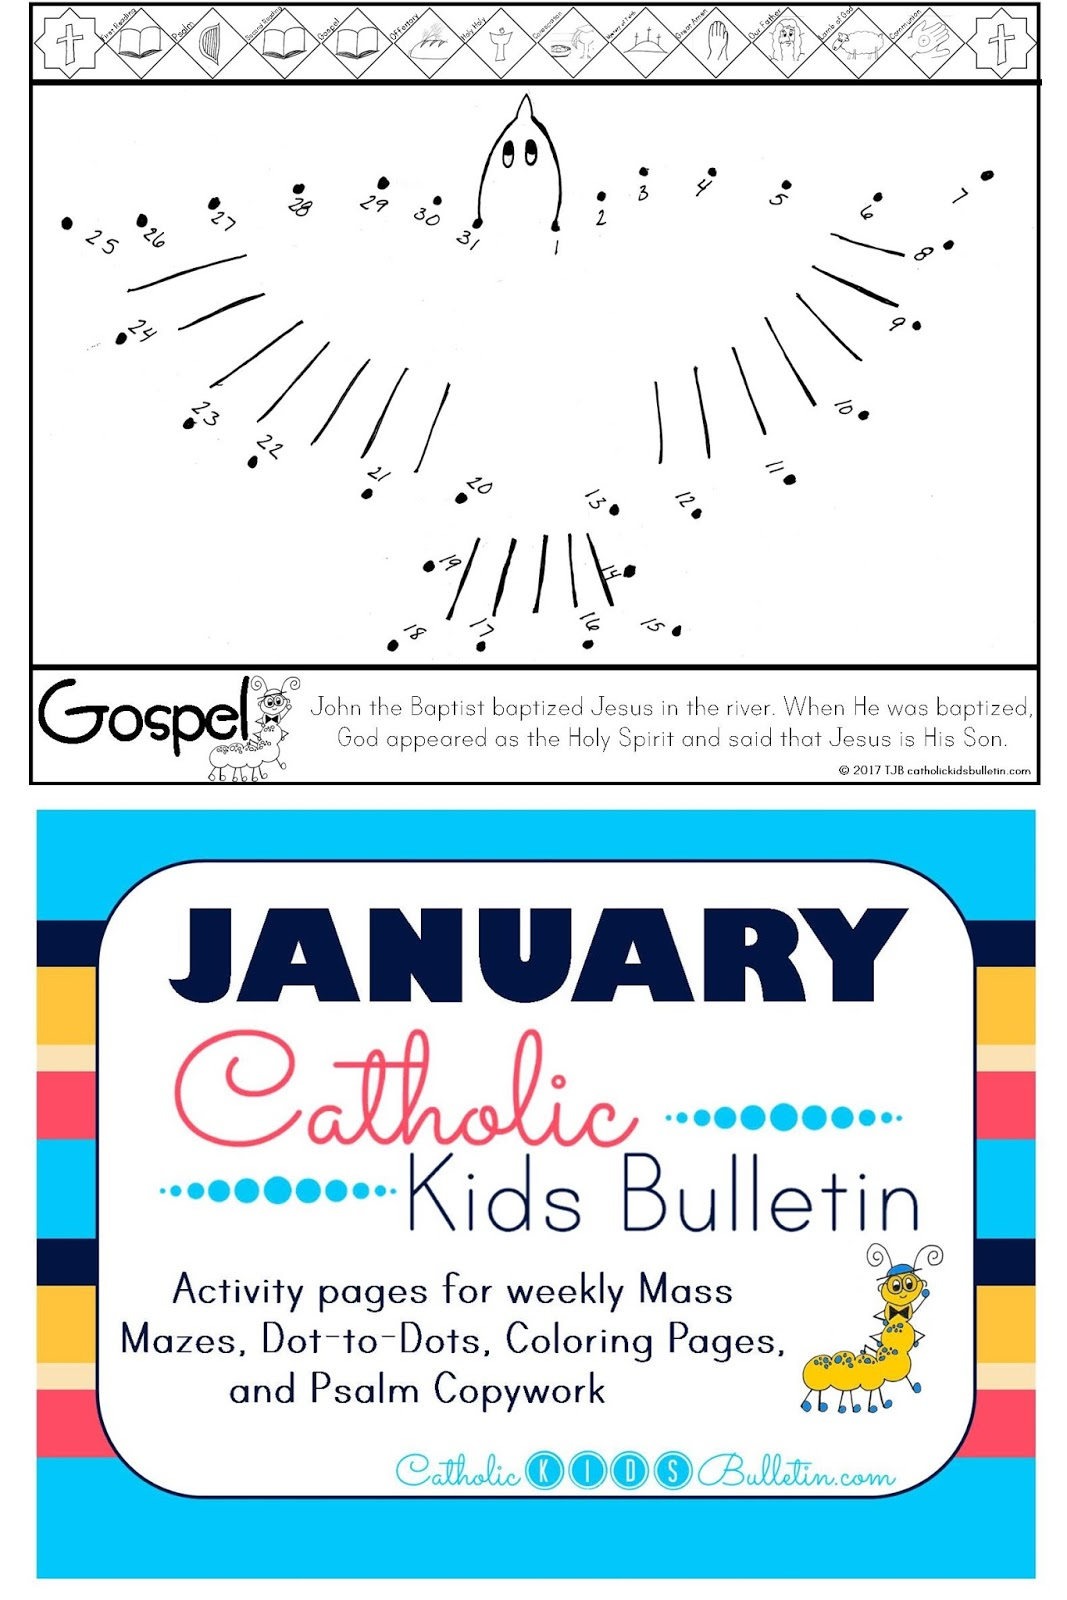 Catholic Kids January Catholic Kids Bulletin